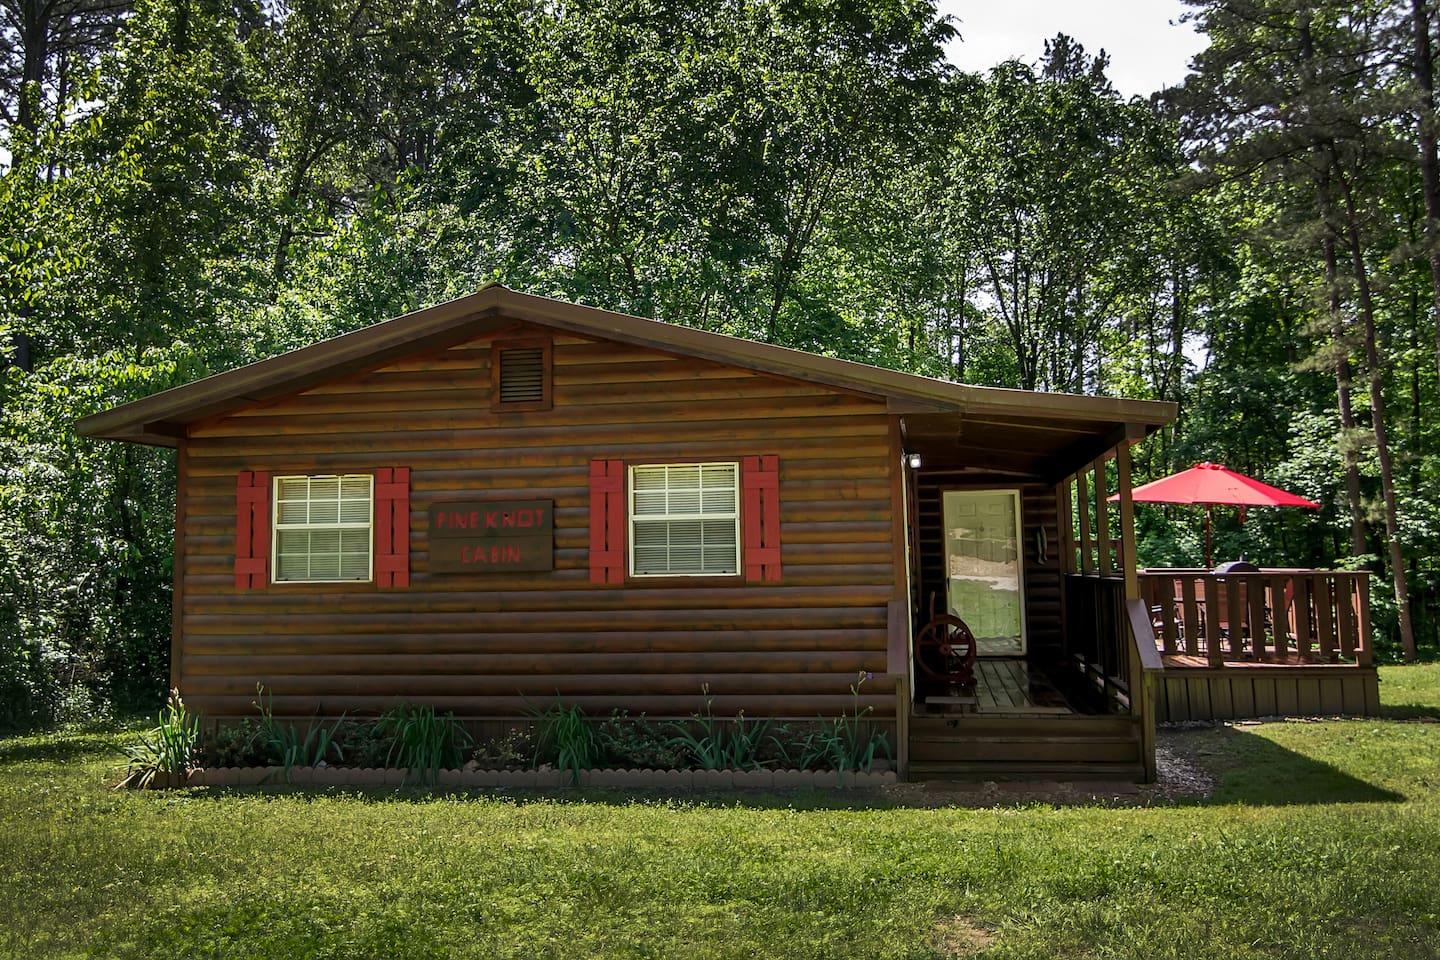 Pine Knot - Cabins for Rent in BROKEN BOW, Oklahoma, United States